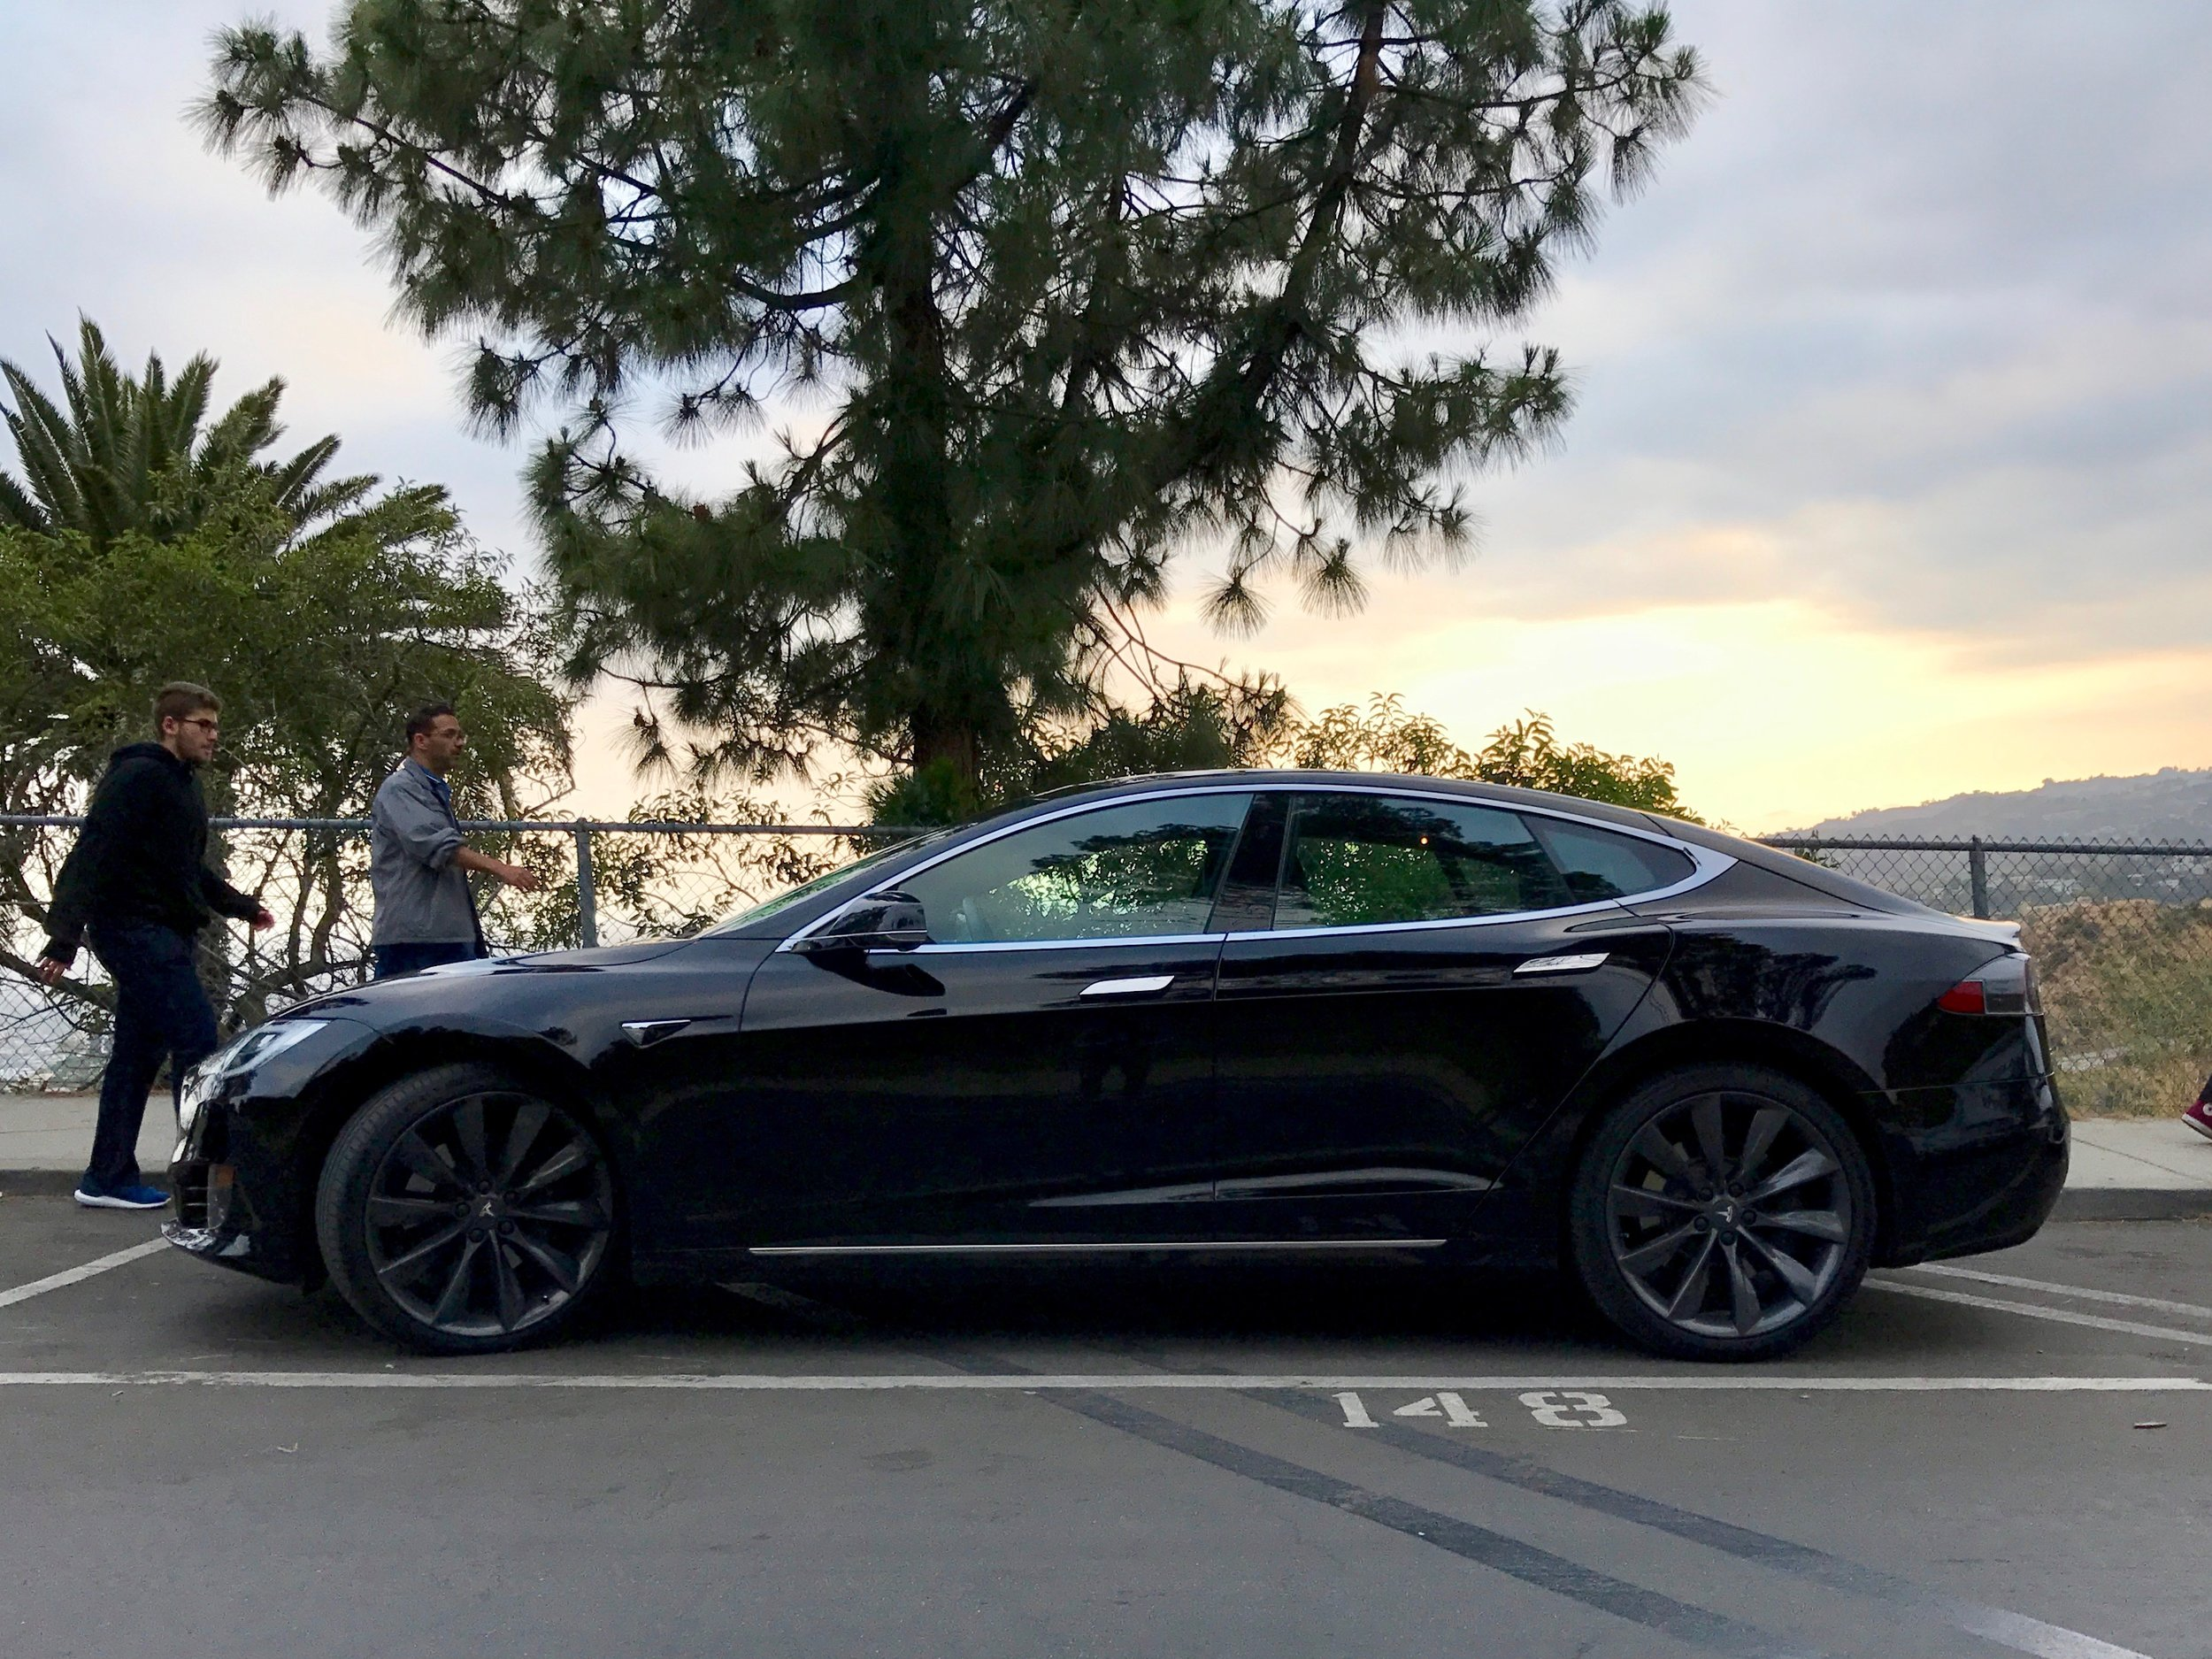 Sideview of the Model S against the sunset at the top of Griffith Park, Downtown Los Angeles.